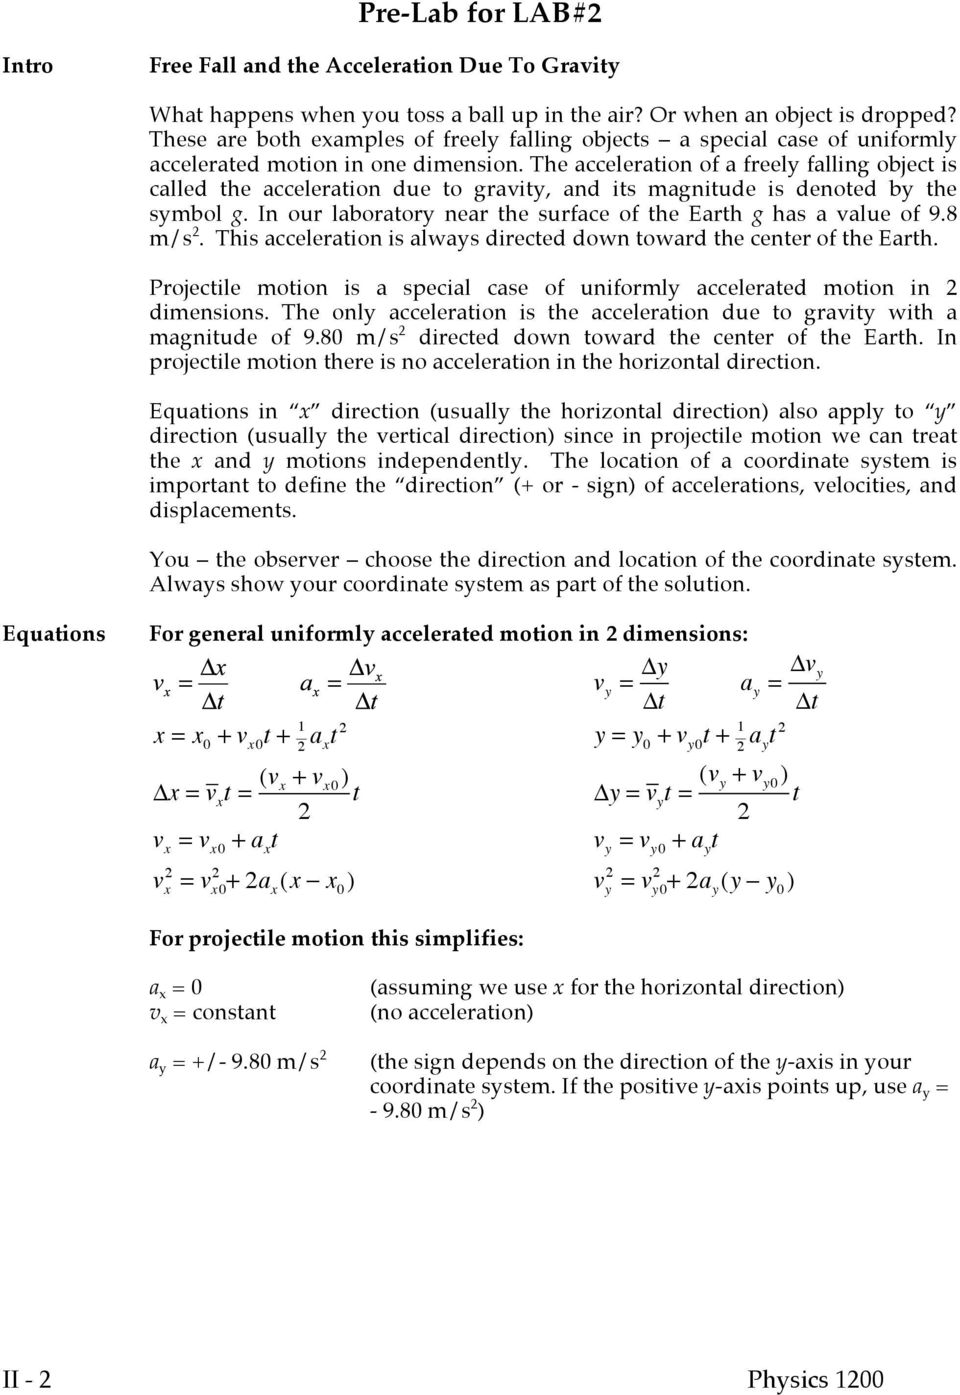 Experiment 2 Free Fall And Projectile Motion Pdf